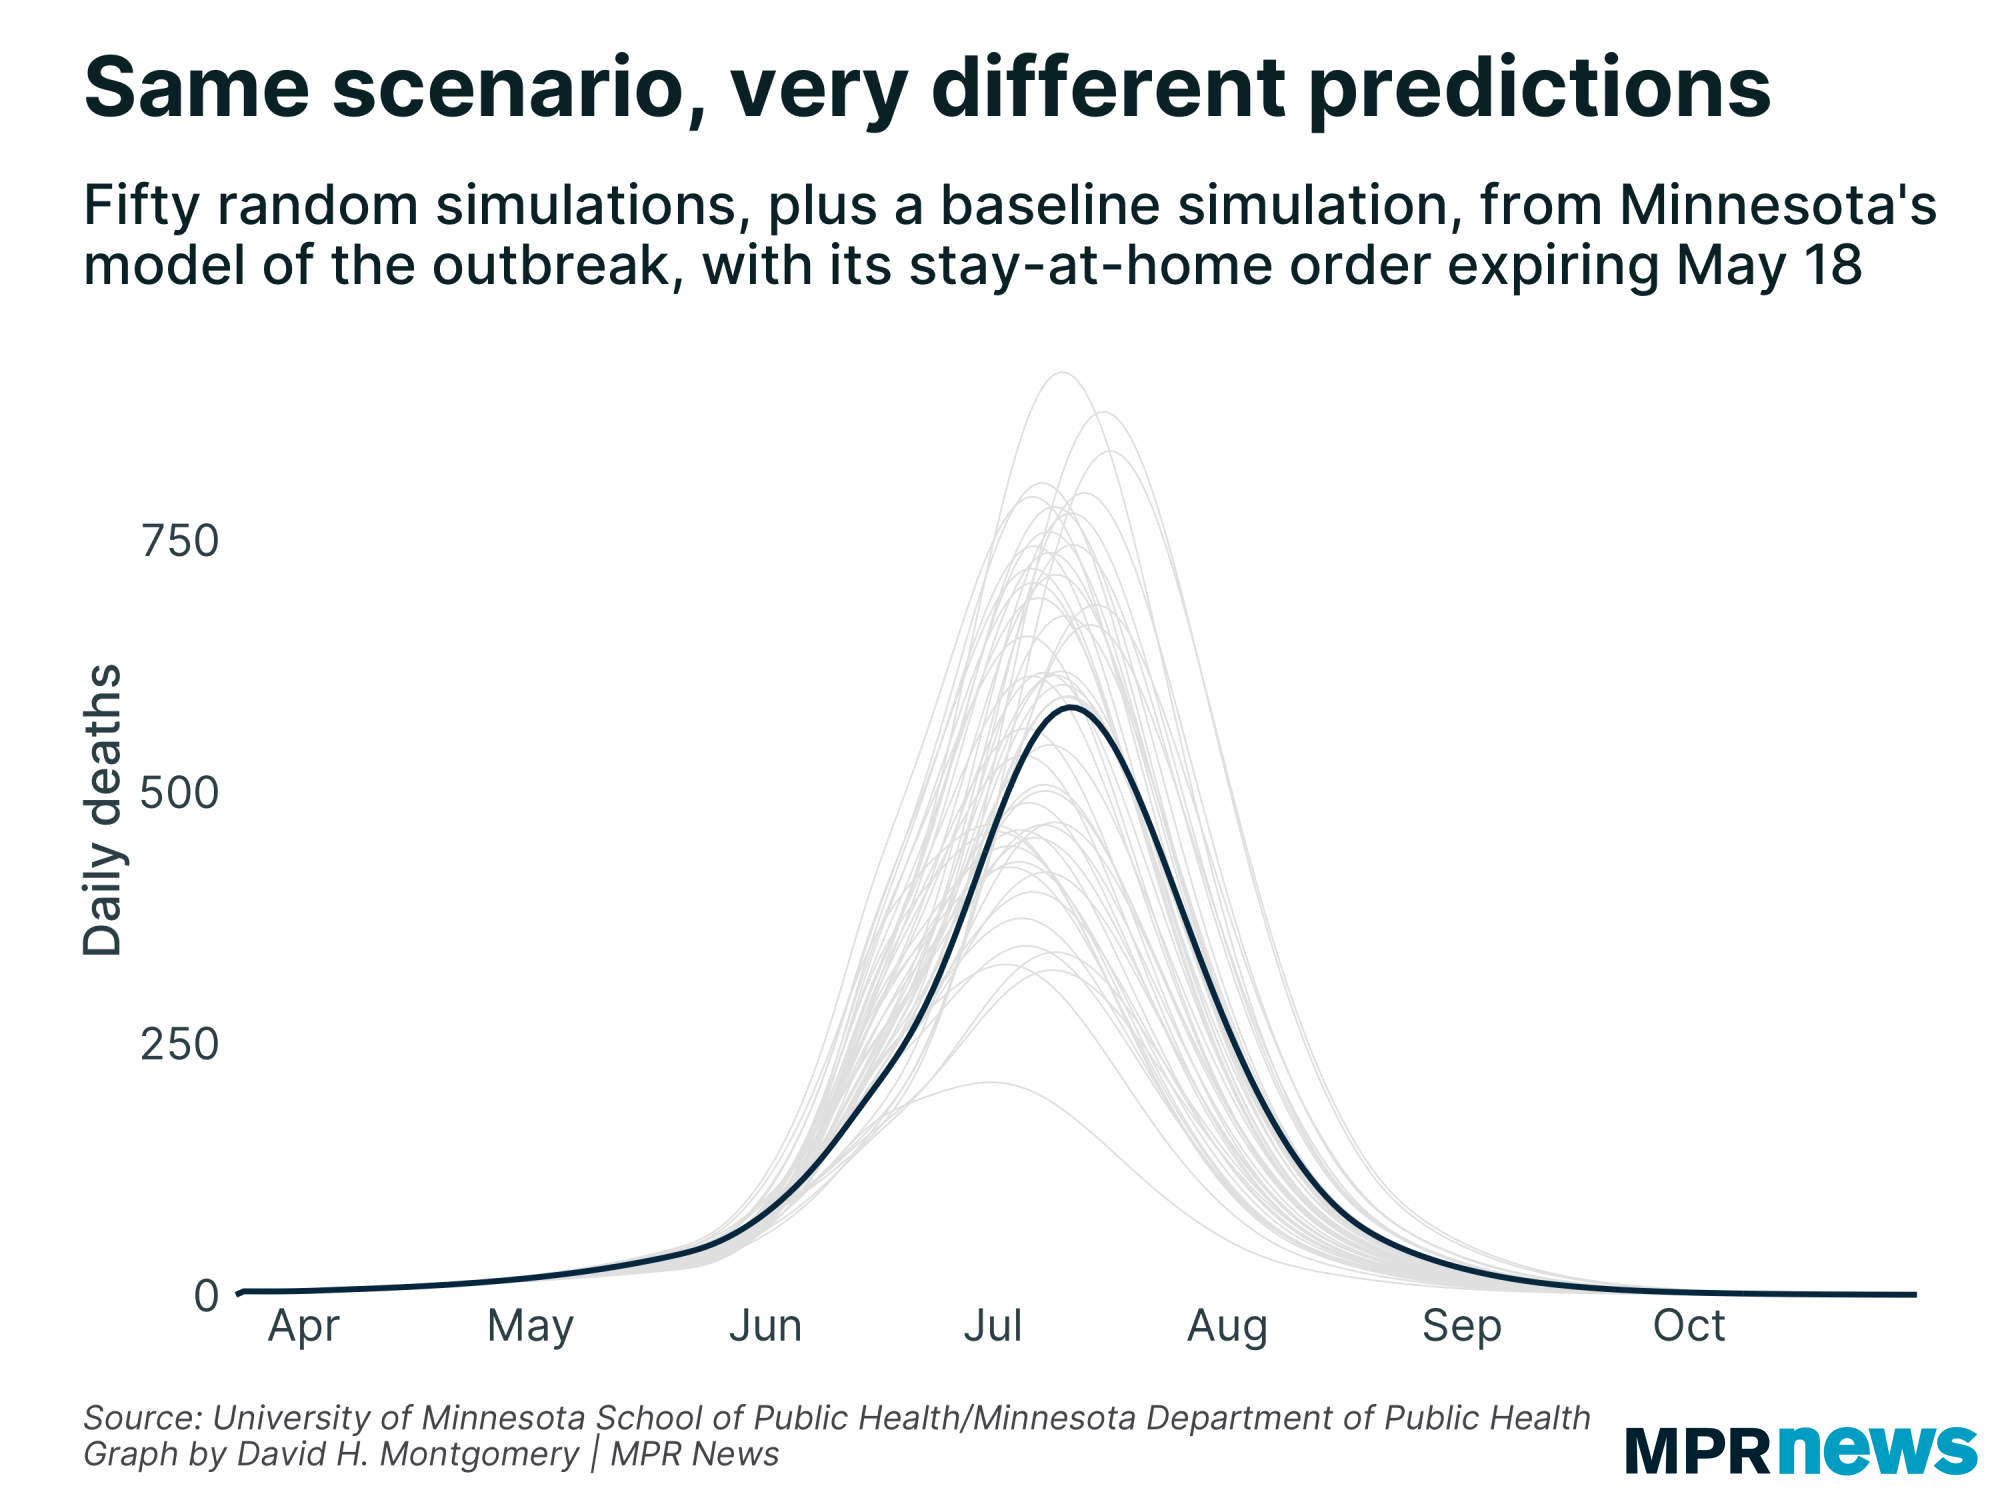 Predictions from Minnesota's COVID-19 model vary considerably.